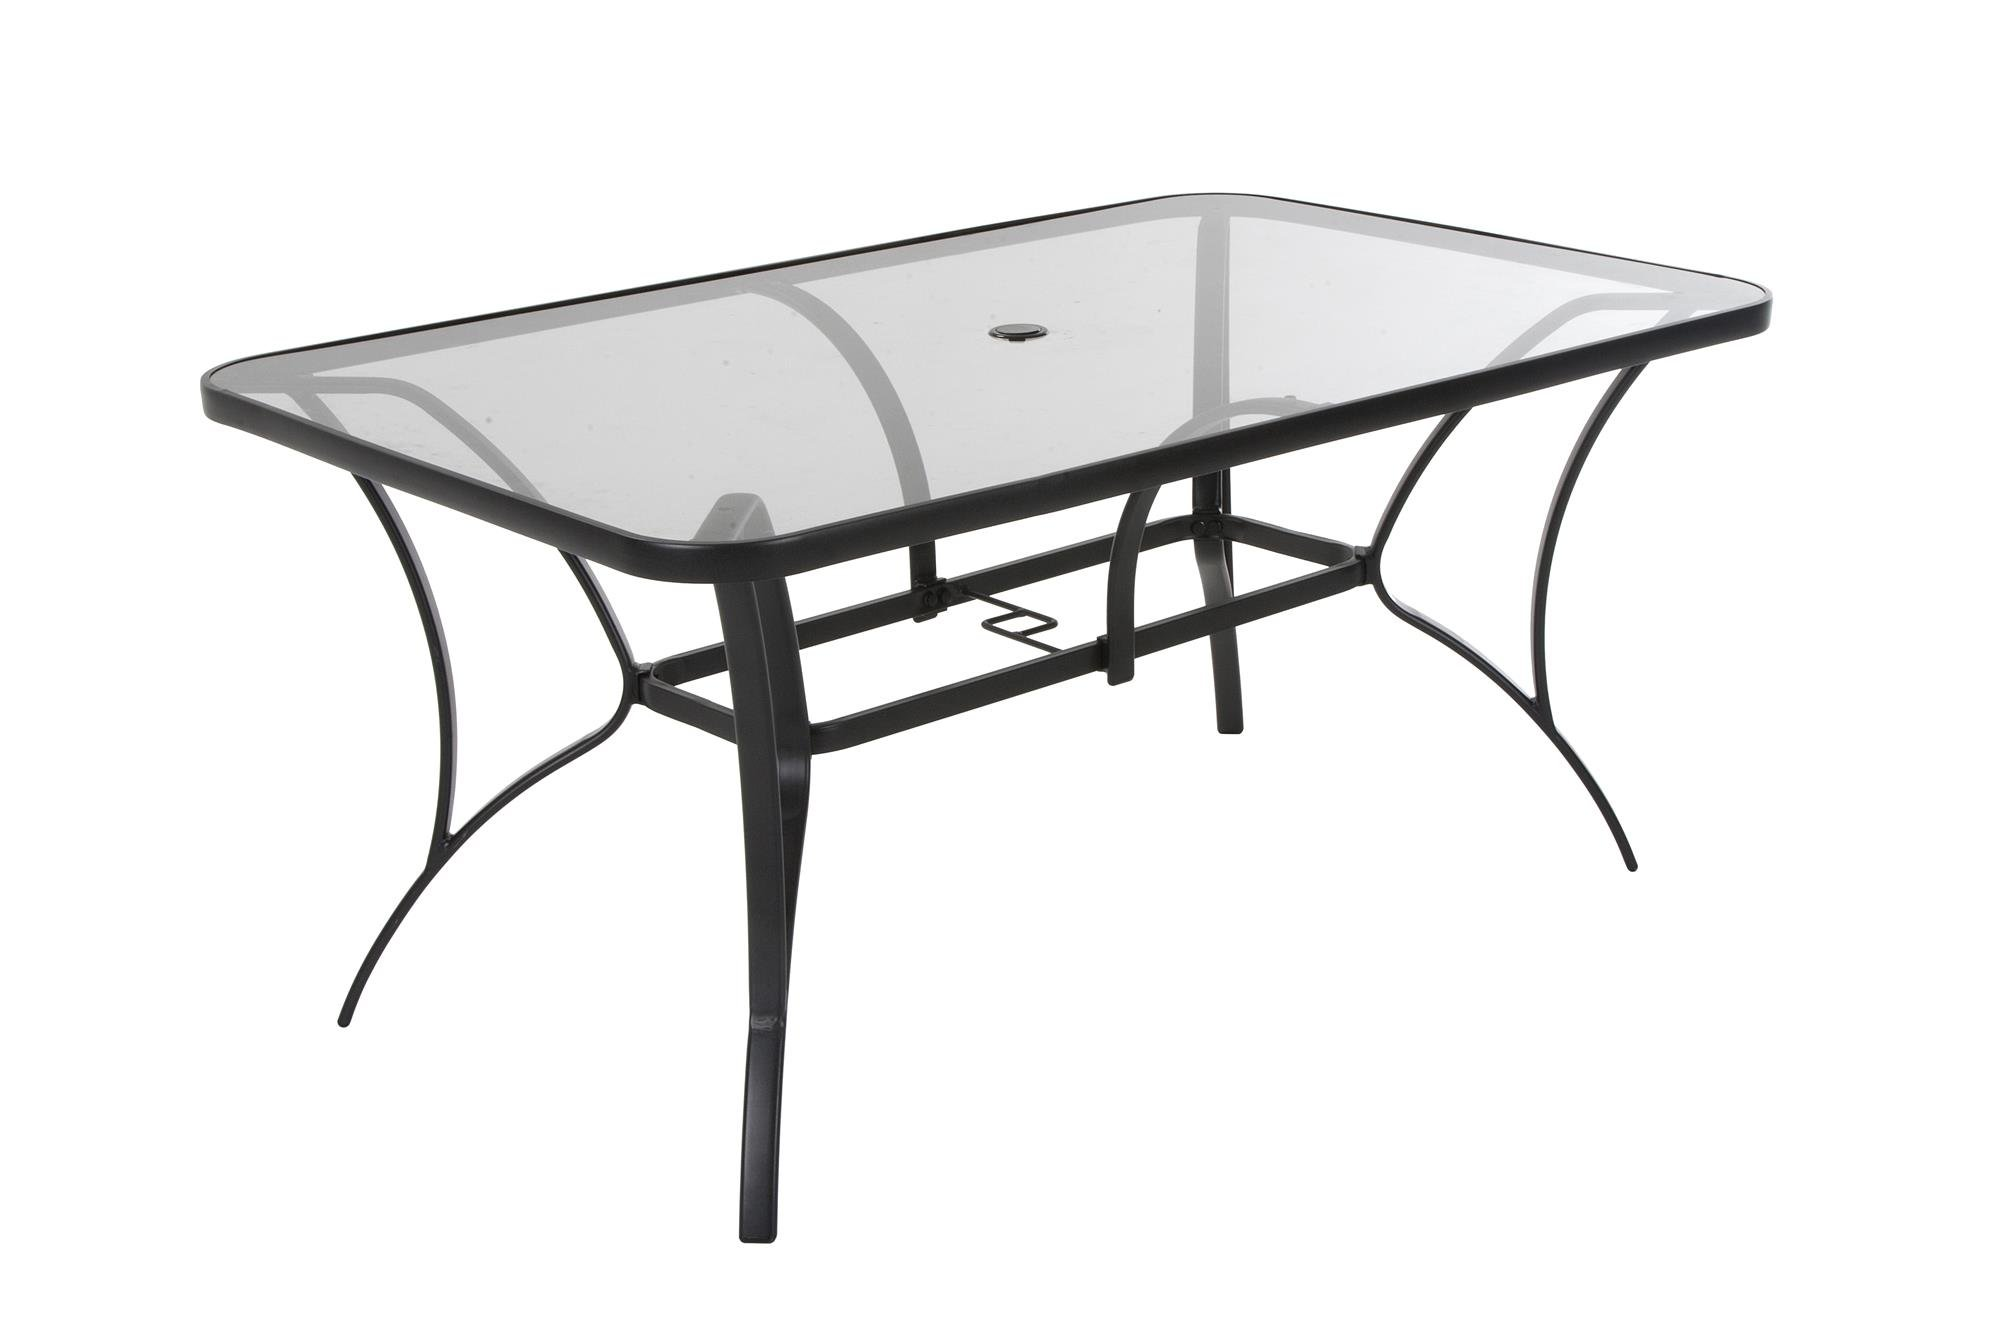 COSCO Outdoor Living Paloma Steel Patio Dining Table, Dark Gray Steel Frame, Tempered Glass Table Top